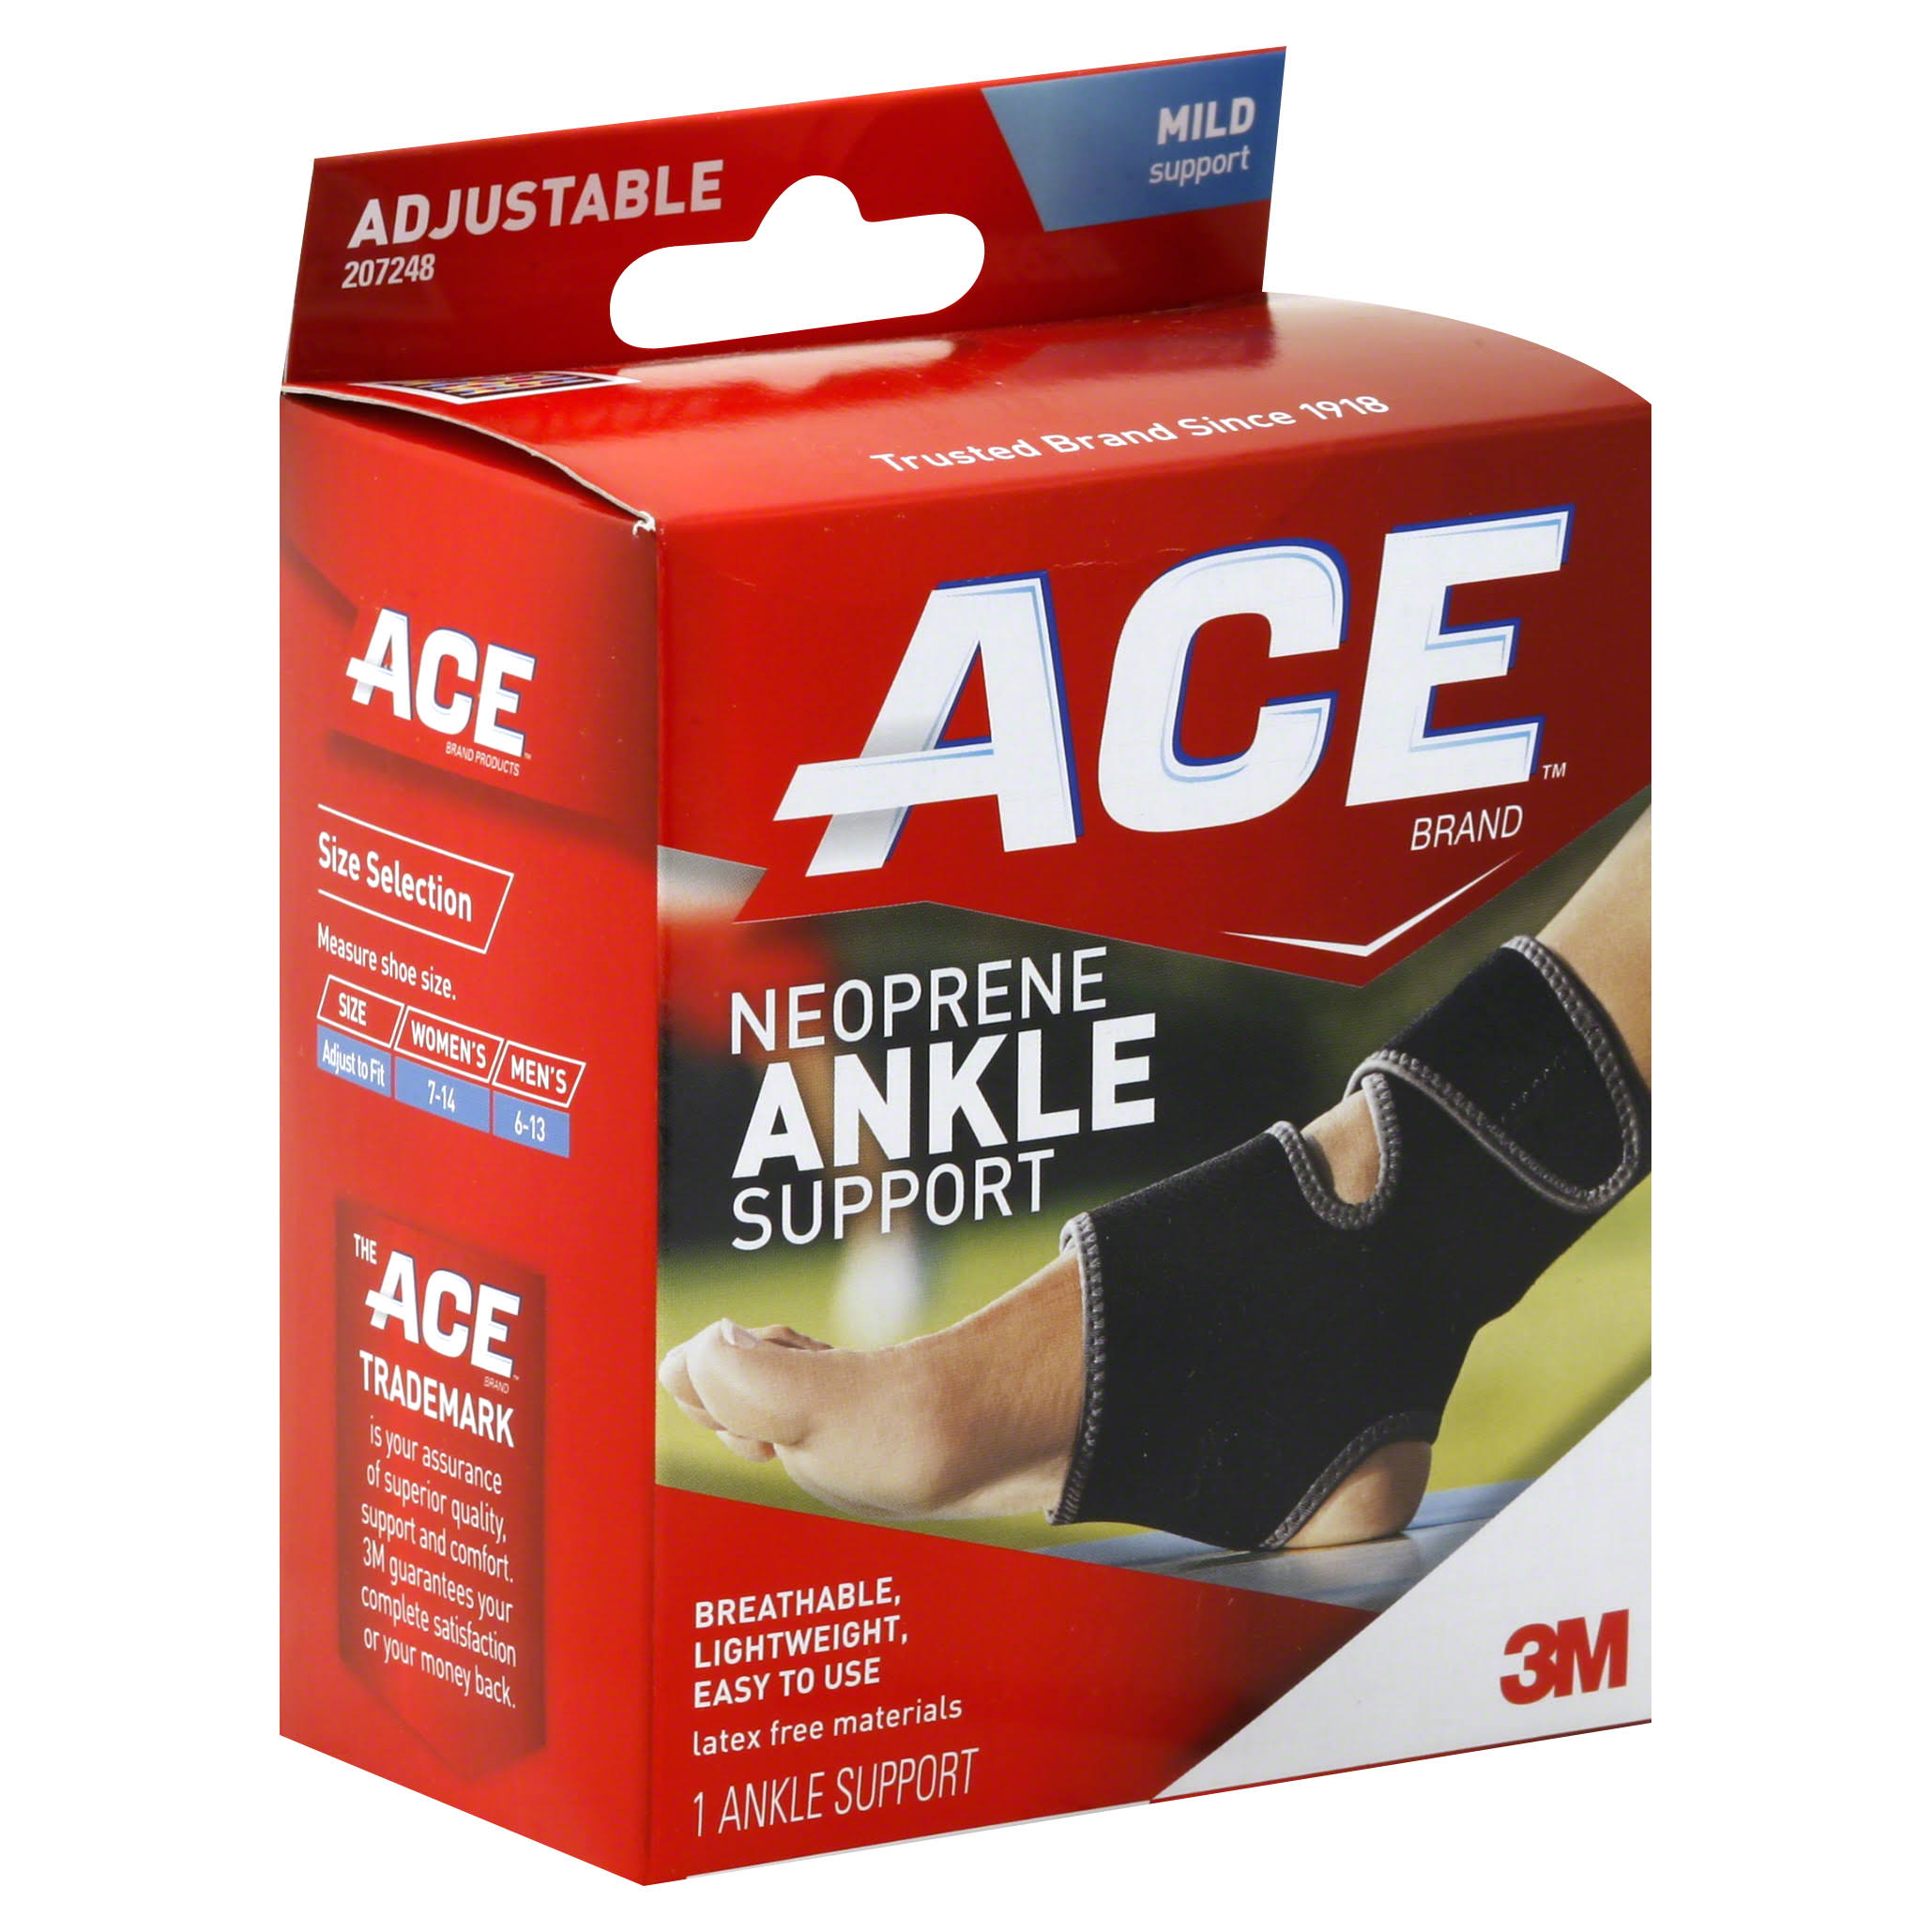 3M Ace Adjustable Neoprene Ankle Support